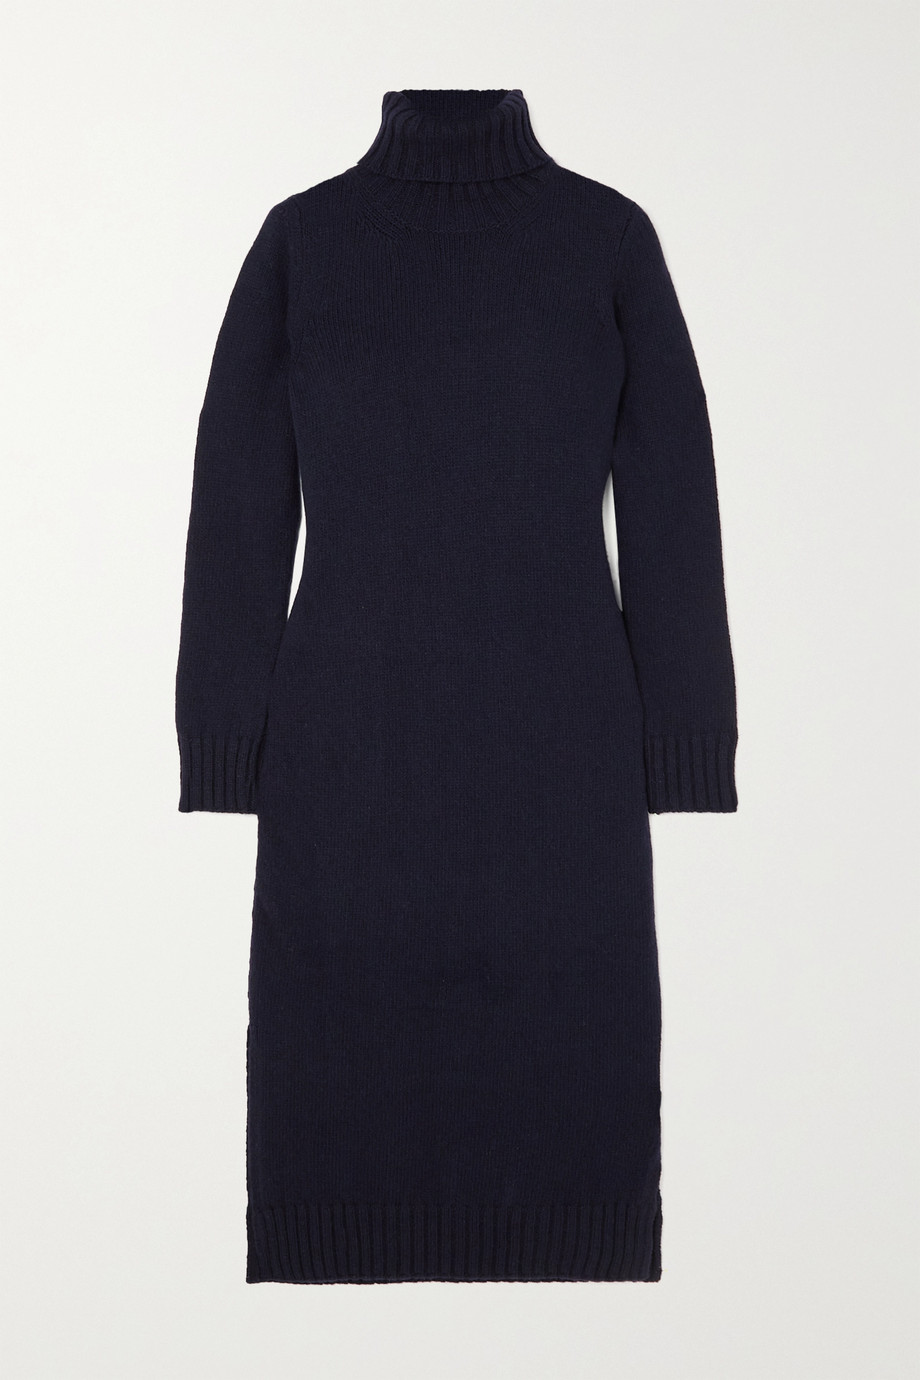 &Daughter + NET SUSTAIN Simone wool turtleneck midi dress